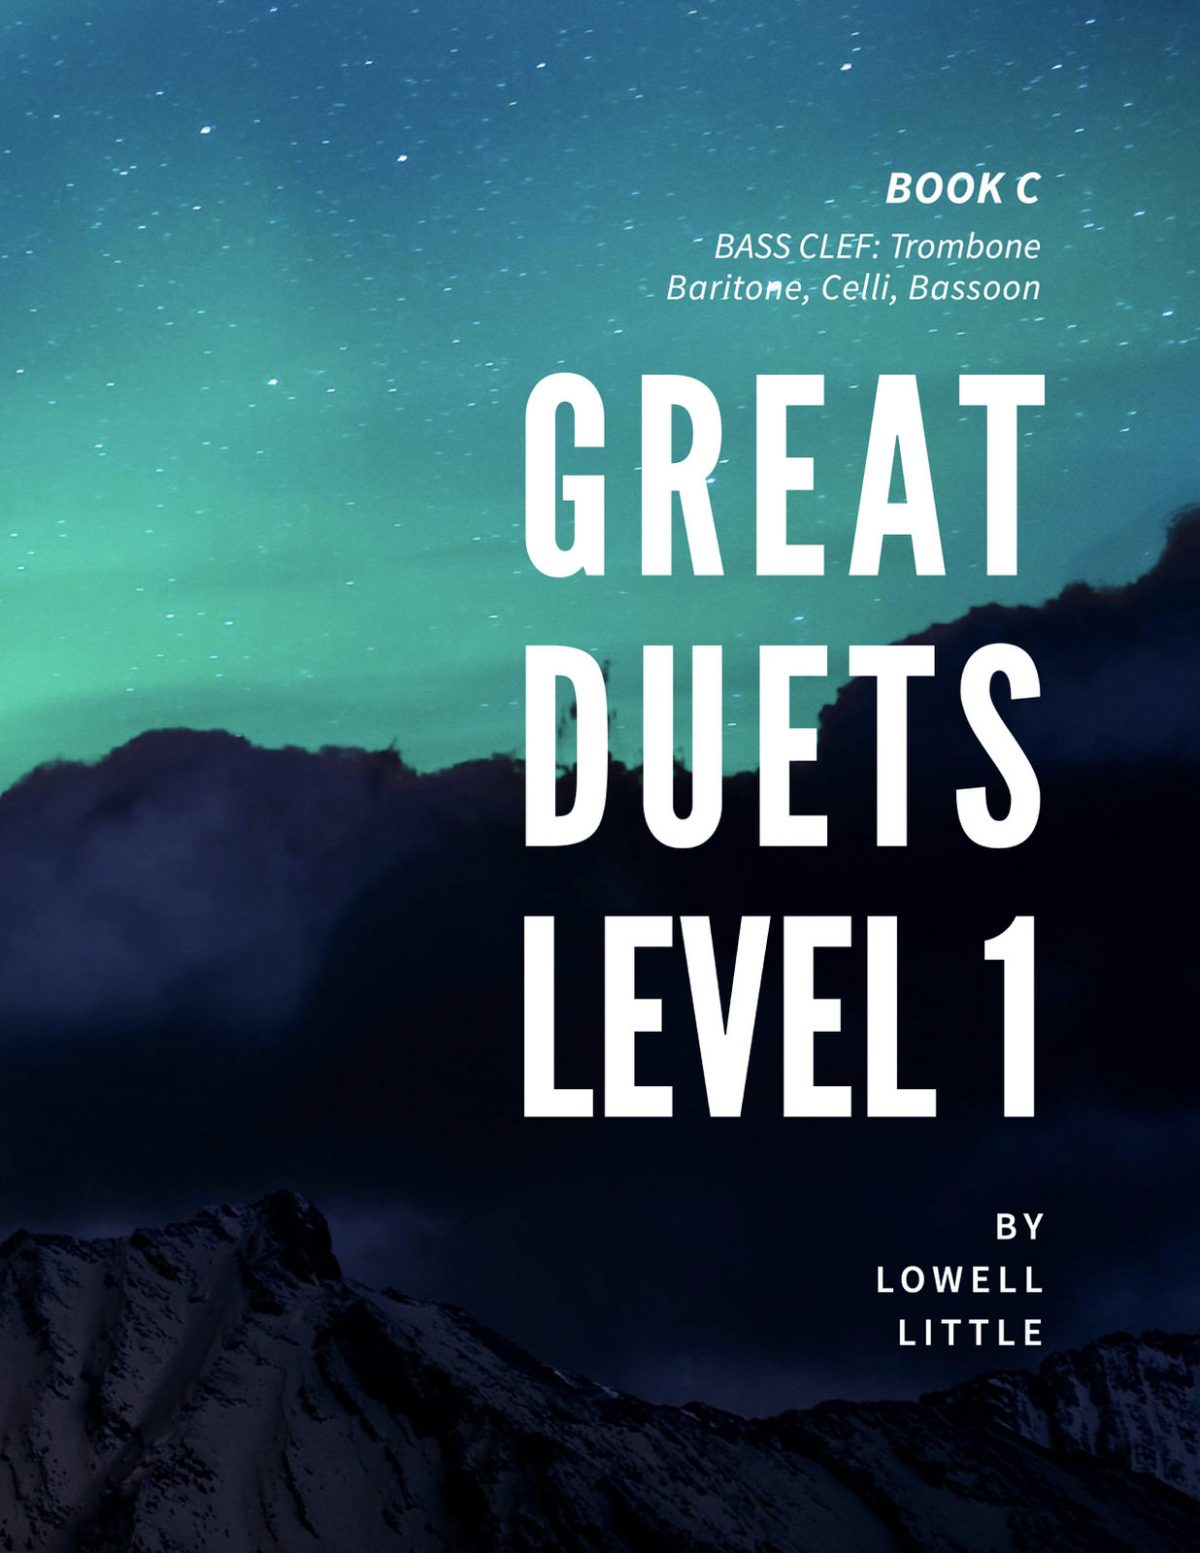 Little, Great Duets Level 1 Book C-p01-1